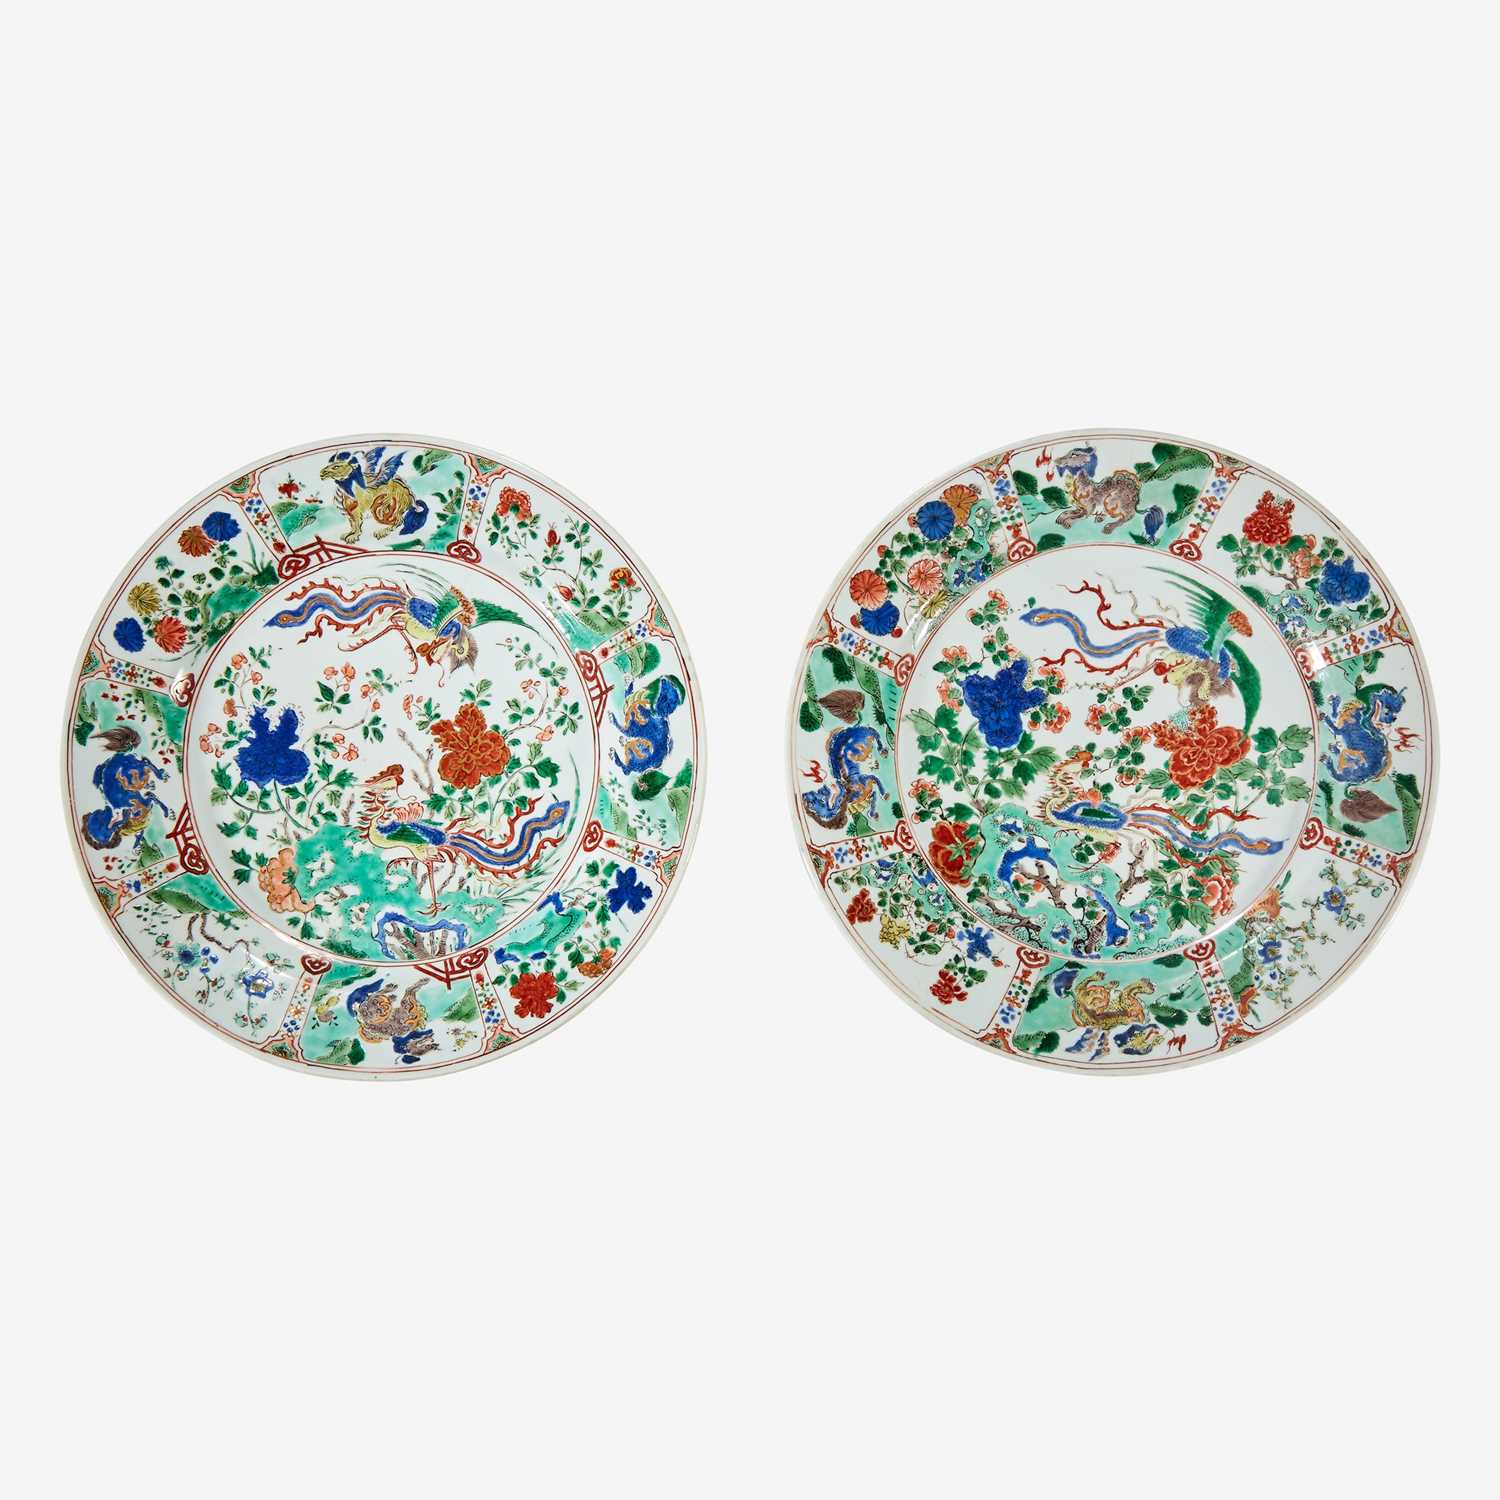 """Lot 57 - Two similar Chinese famille verte-decorated porcelain """"Phoenix and Peony"""" dishes"""